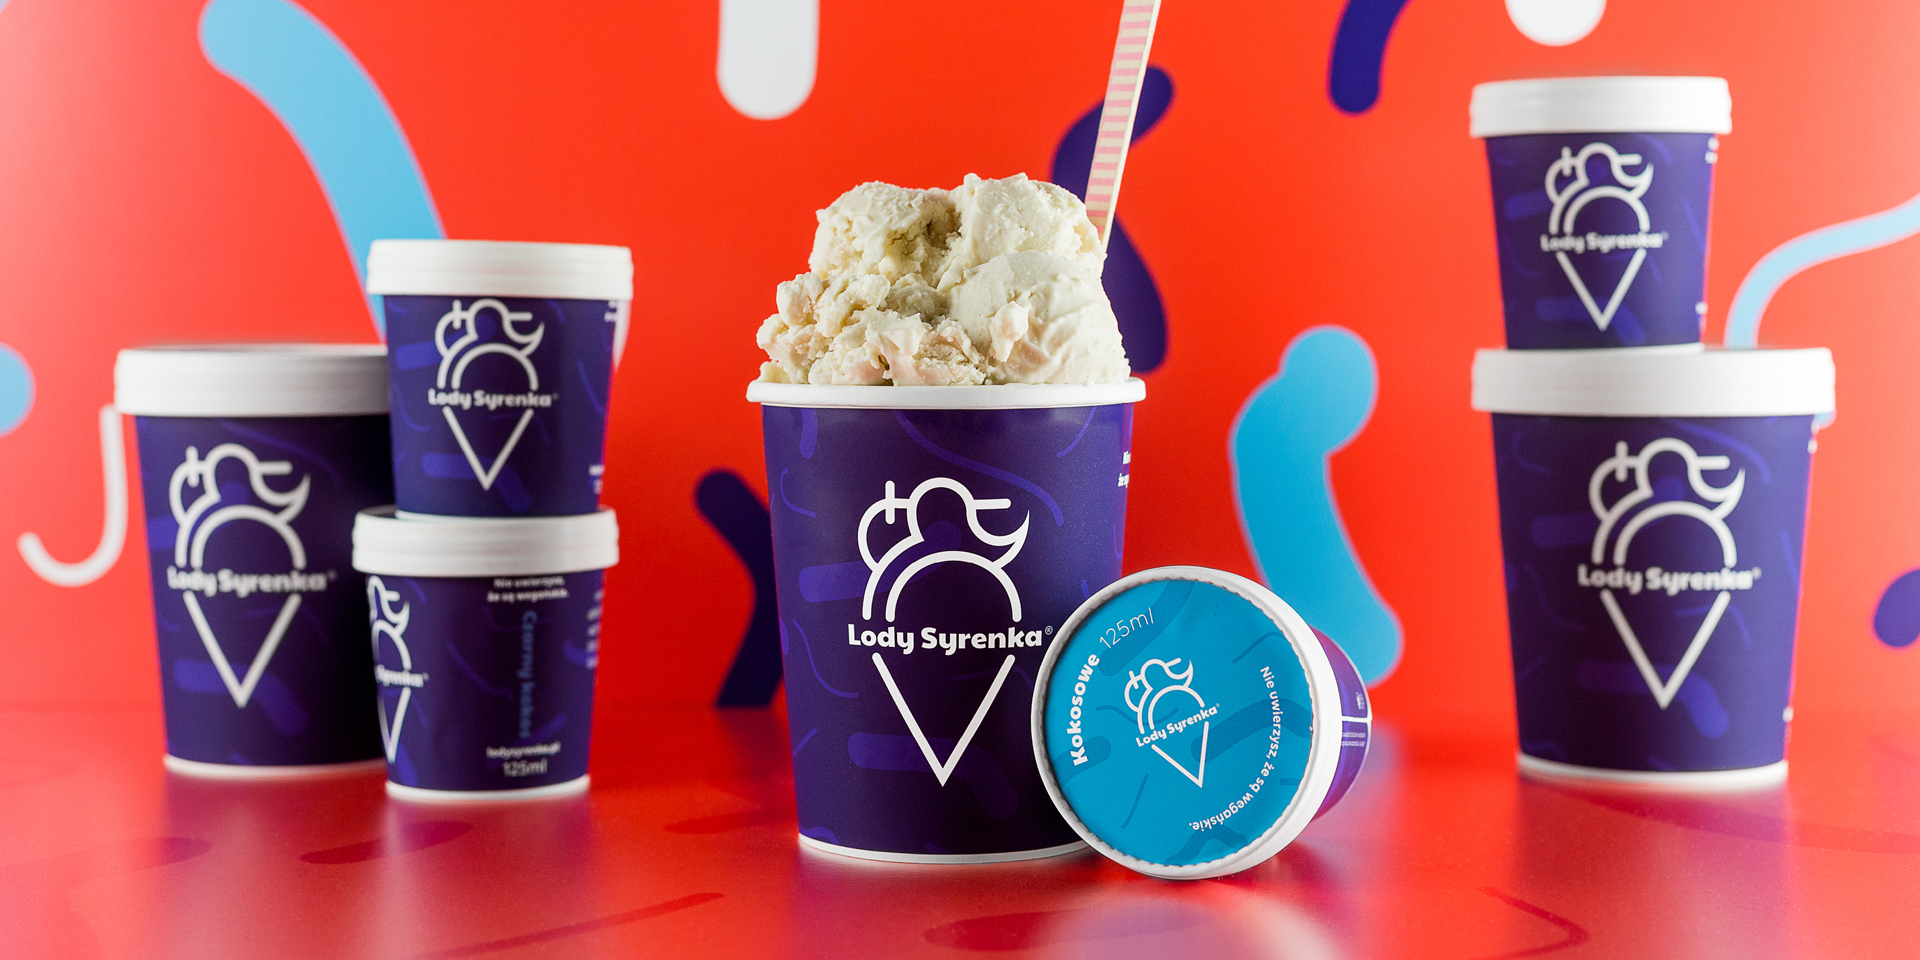 Visual Brand Identity System and Packaging Design for Small Polish Ice Cream Producer